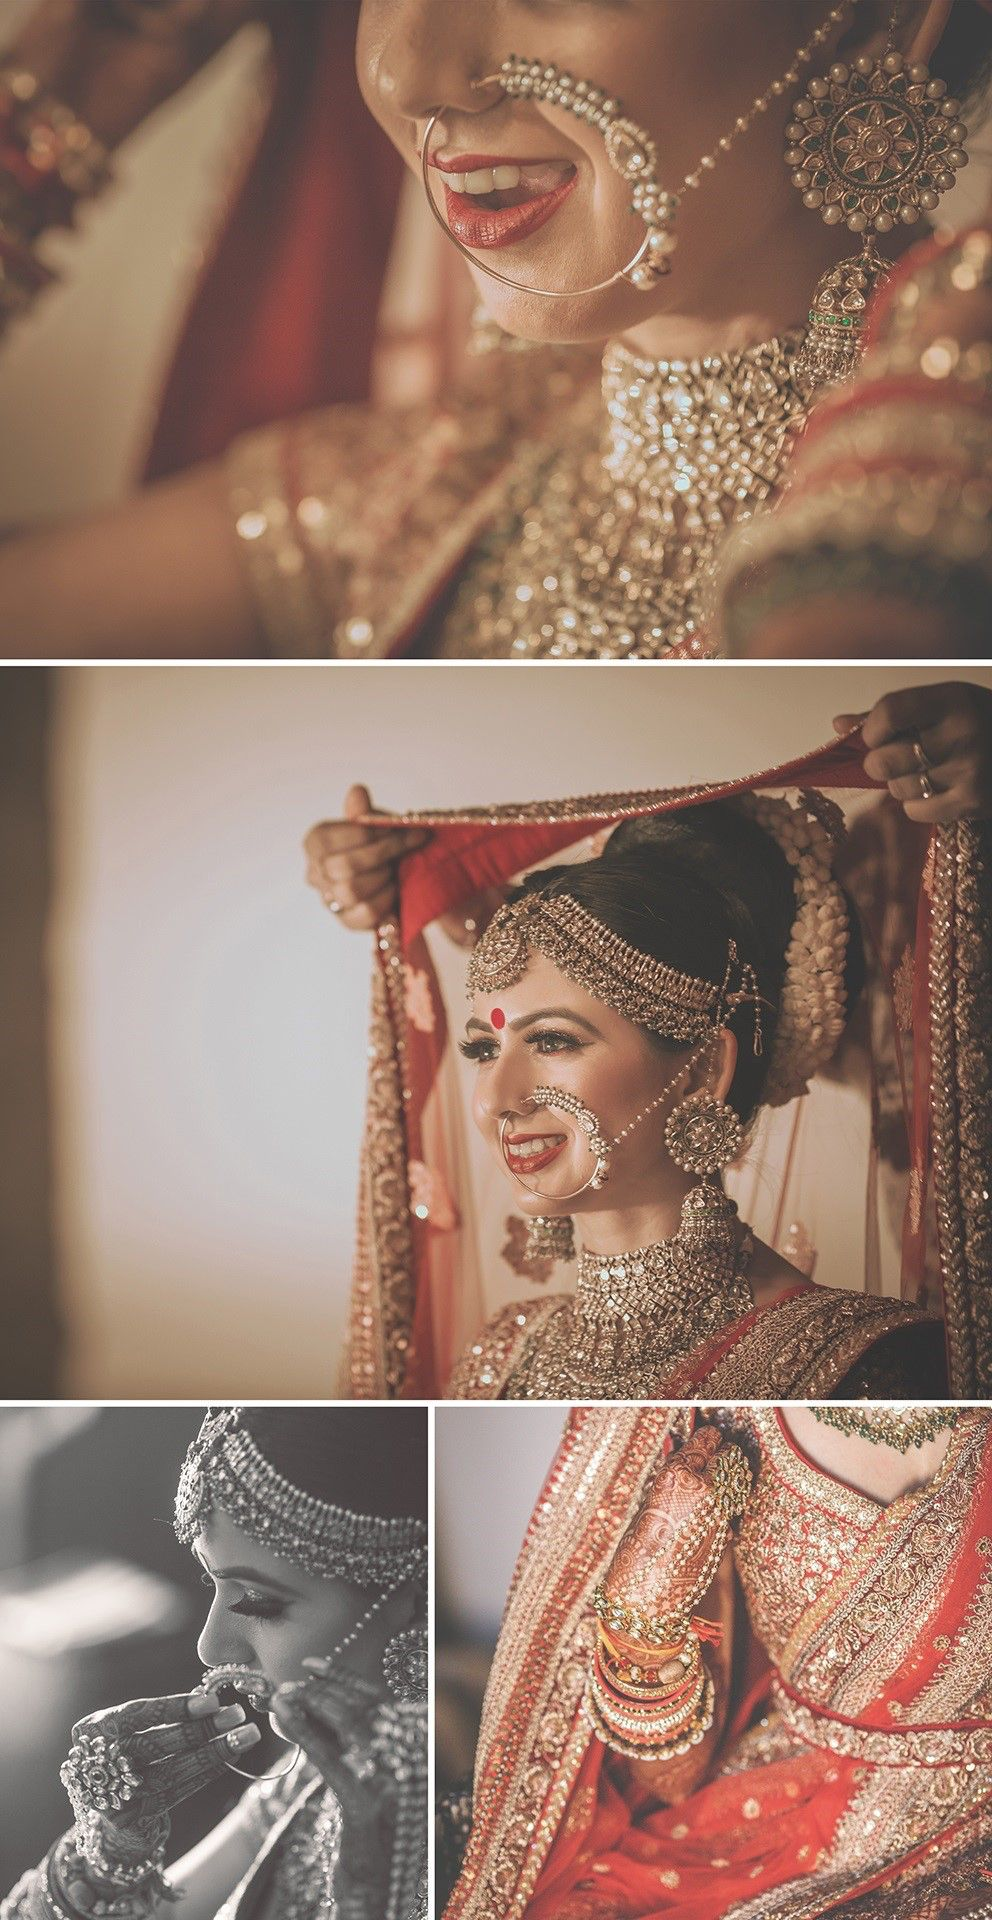 Indian Bride Preparation Beautiful Pictures Stunning Unforgettable Moments Bridal Photography Poses Bridal Photoshoot Bride Photoshoot